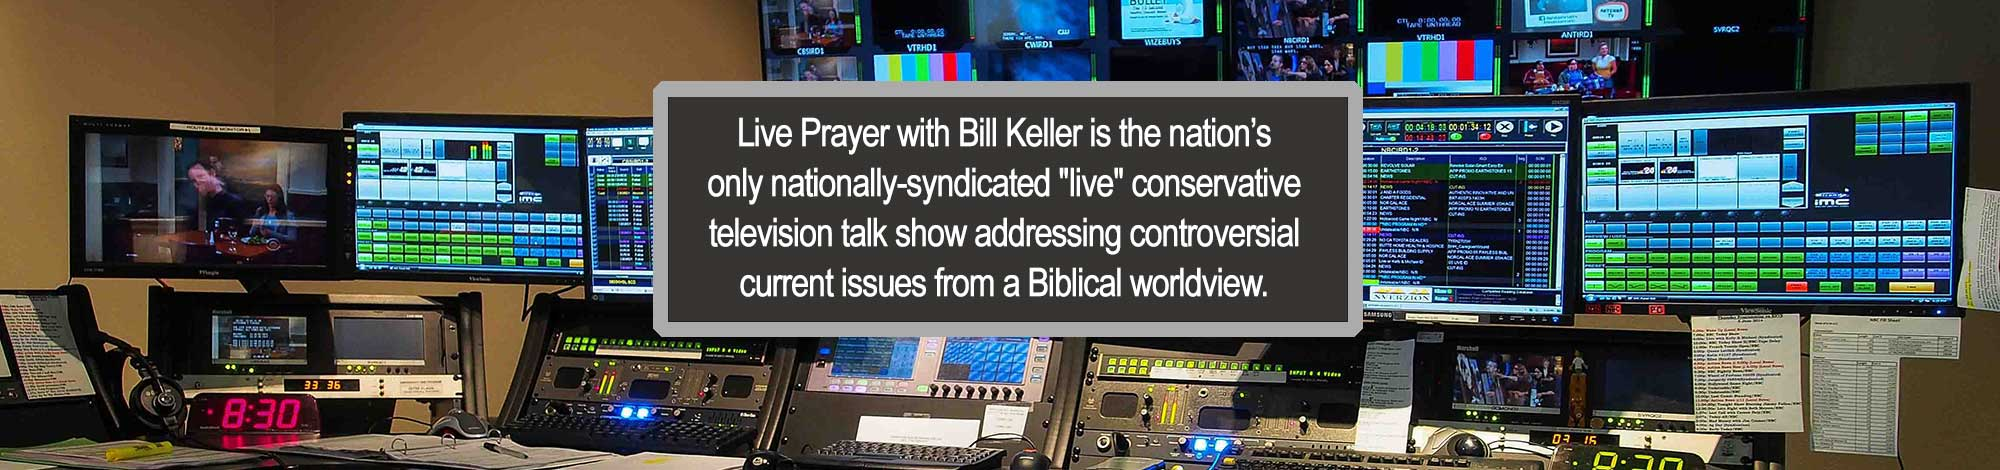 A room with dozens of monitors and equipment. LivePrayer with Bill Keller, a nationally syndicated live Biblical TV show.